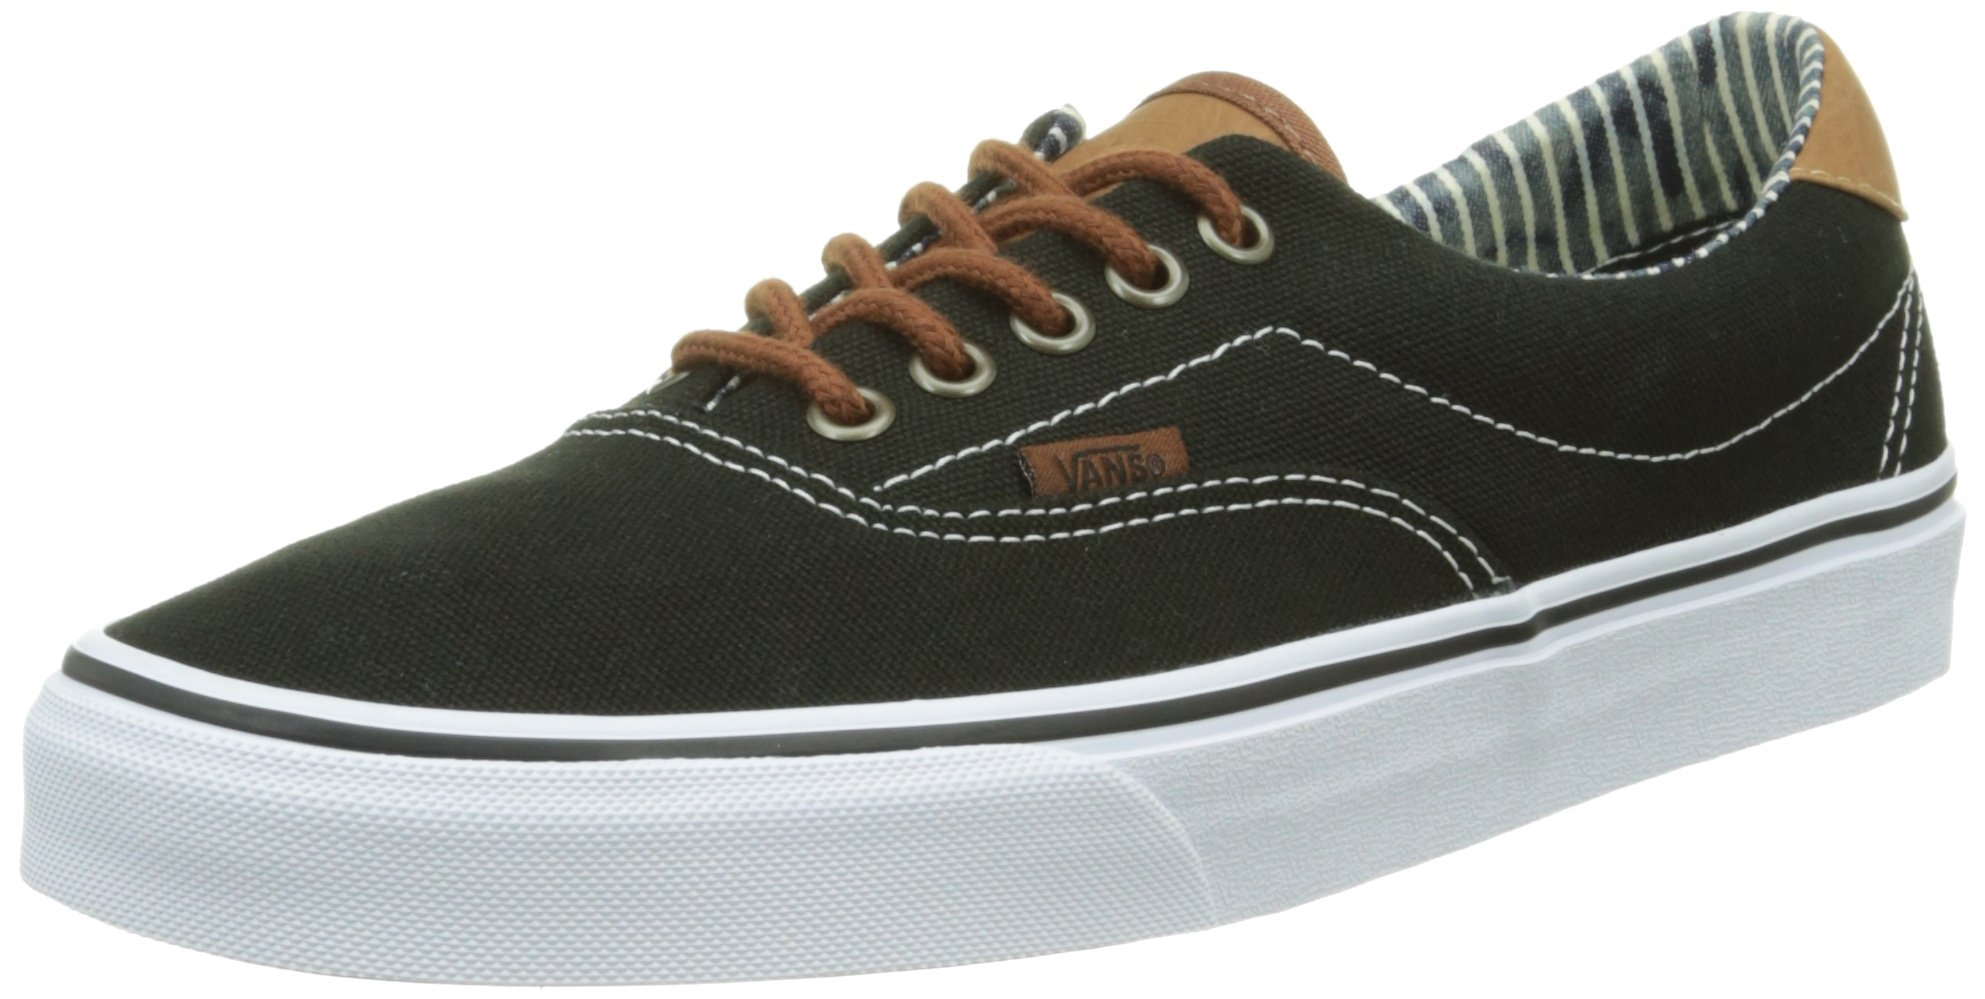 595413cf97 Vans Unisex Era 59 (C L) Black Stripe Denim Skate Shoe 9.5 Men US ...